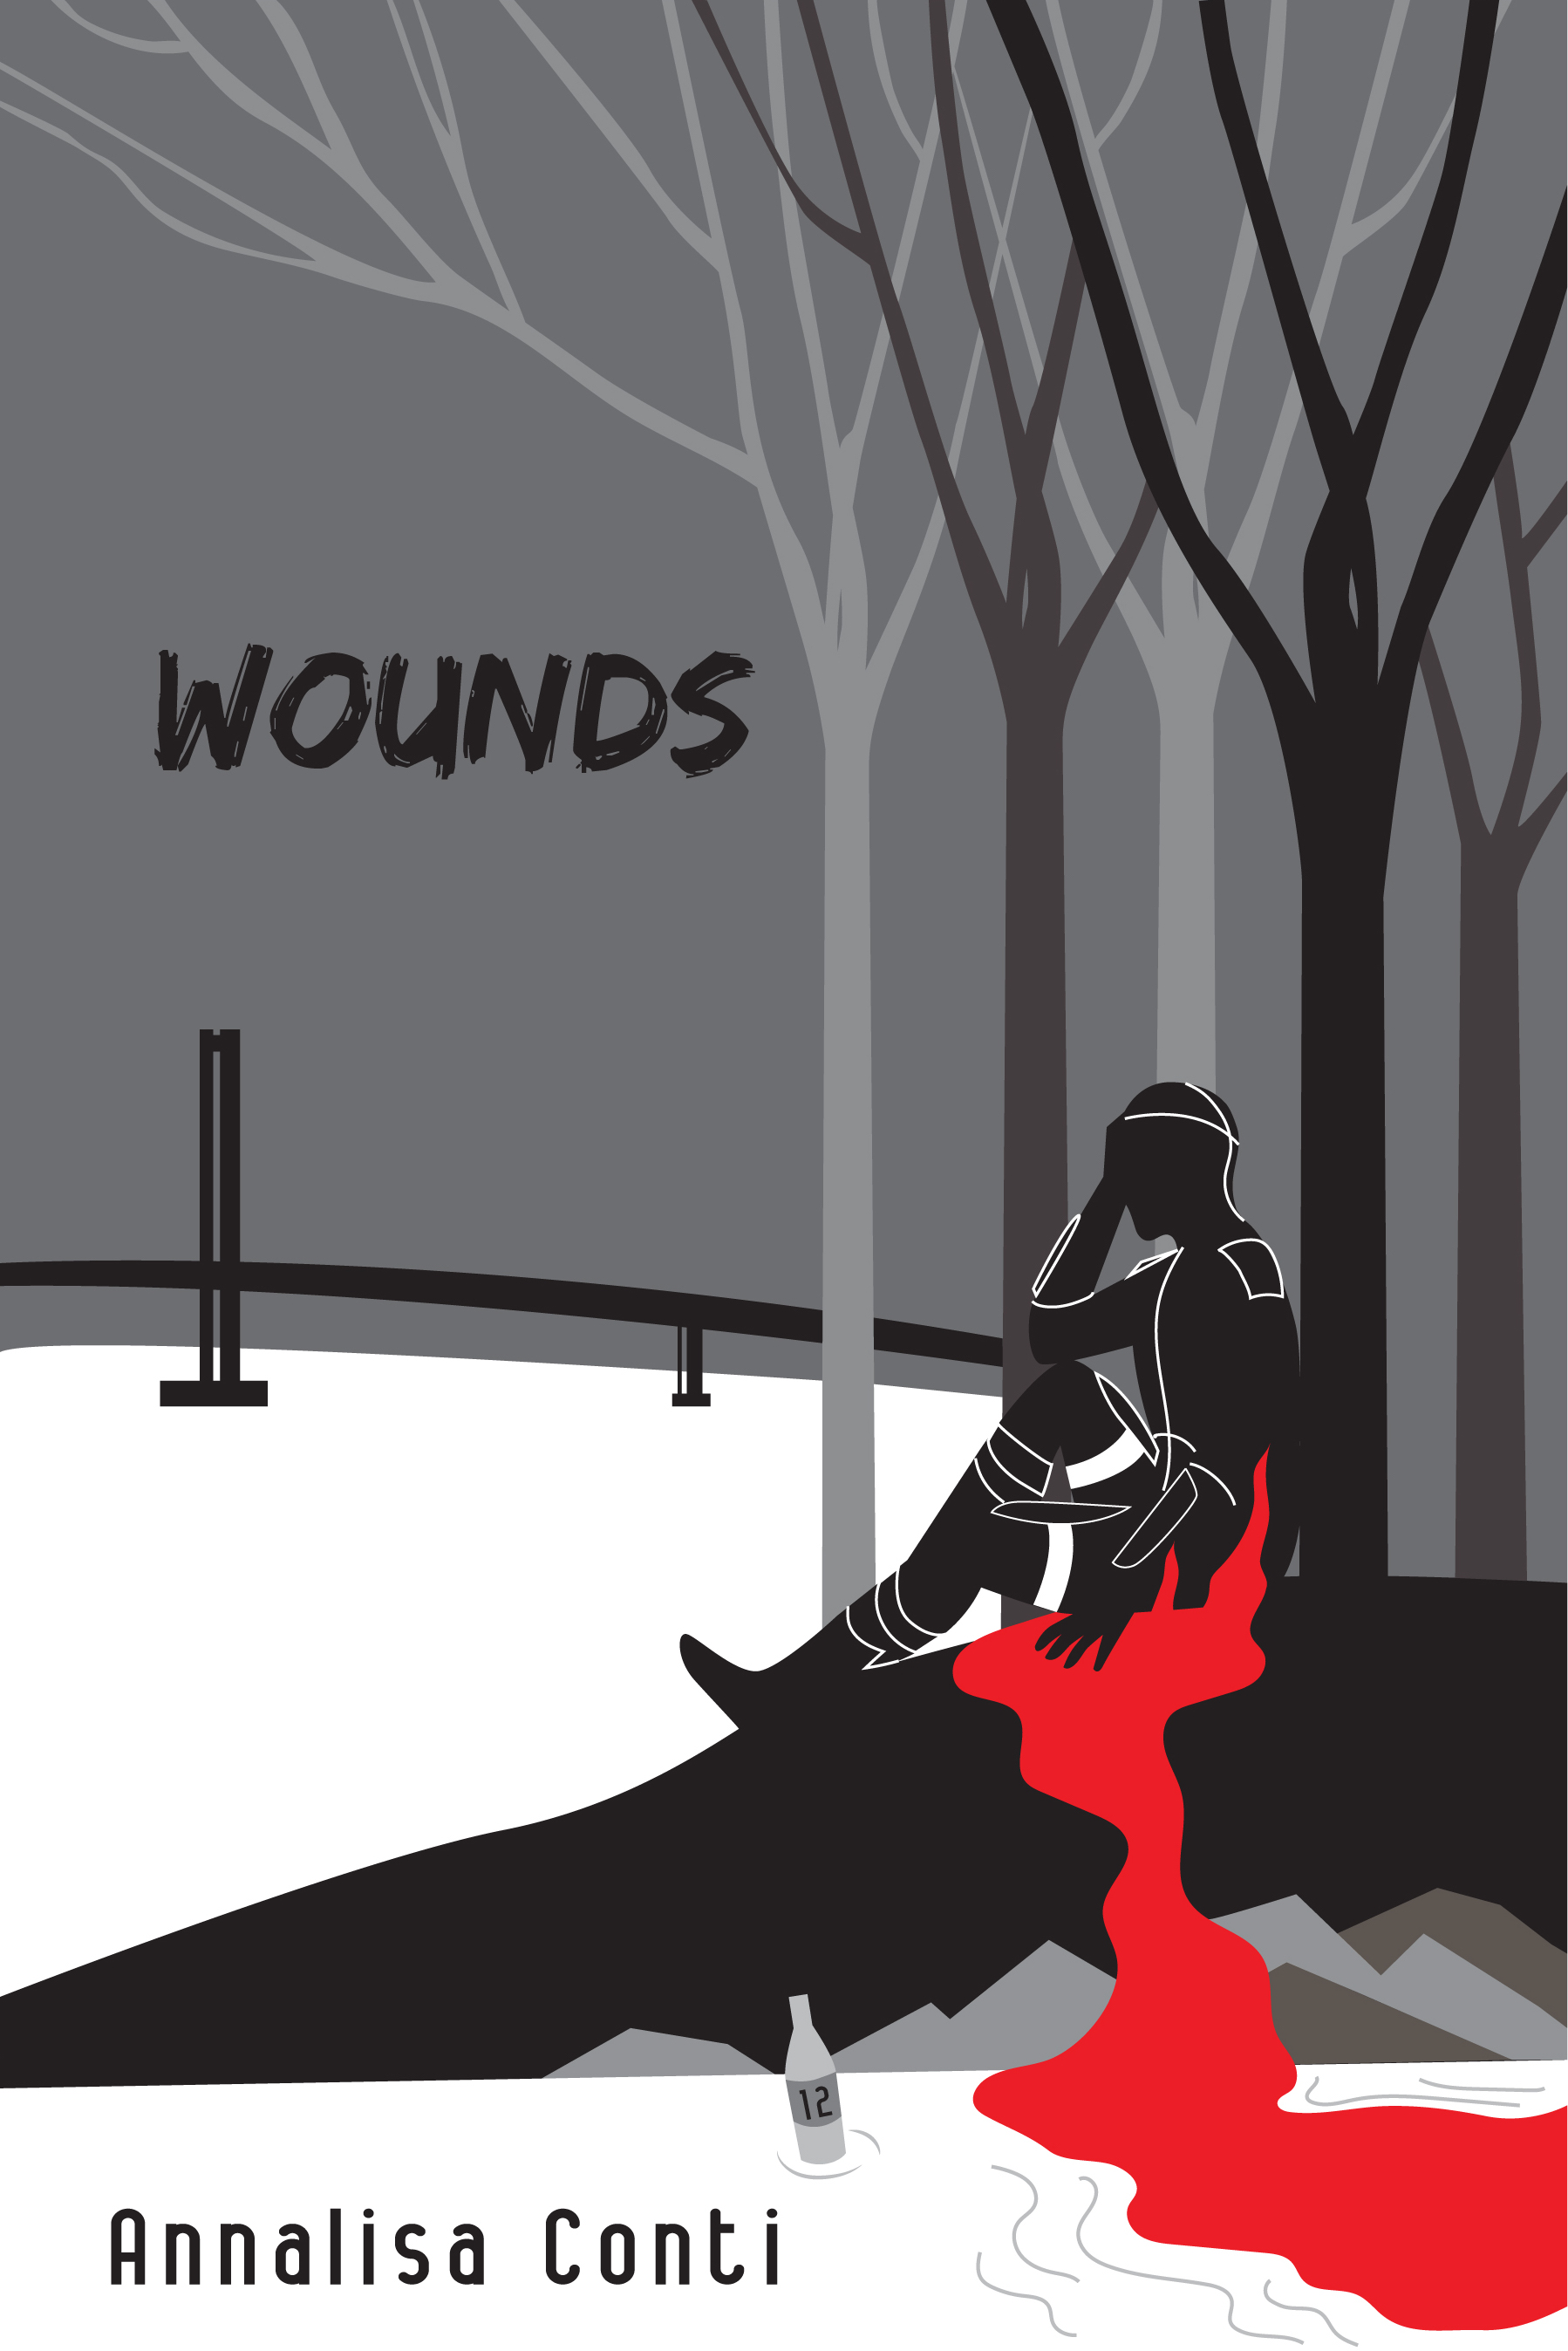 Wounds (Episode 12)